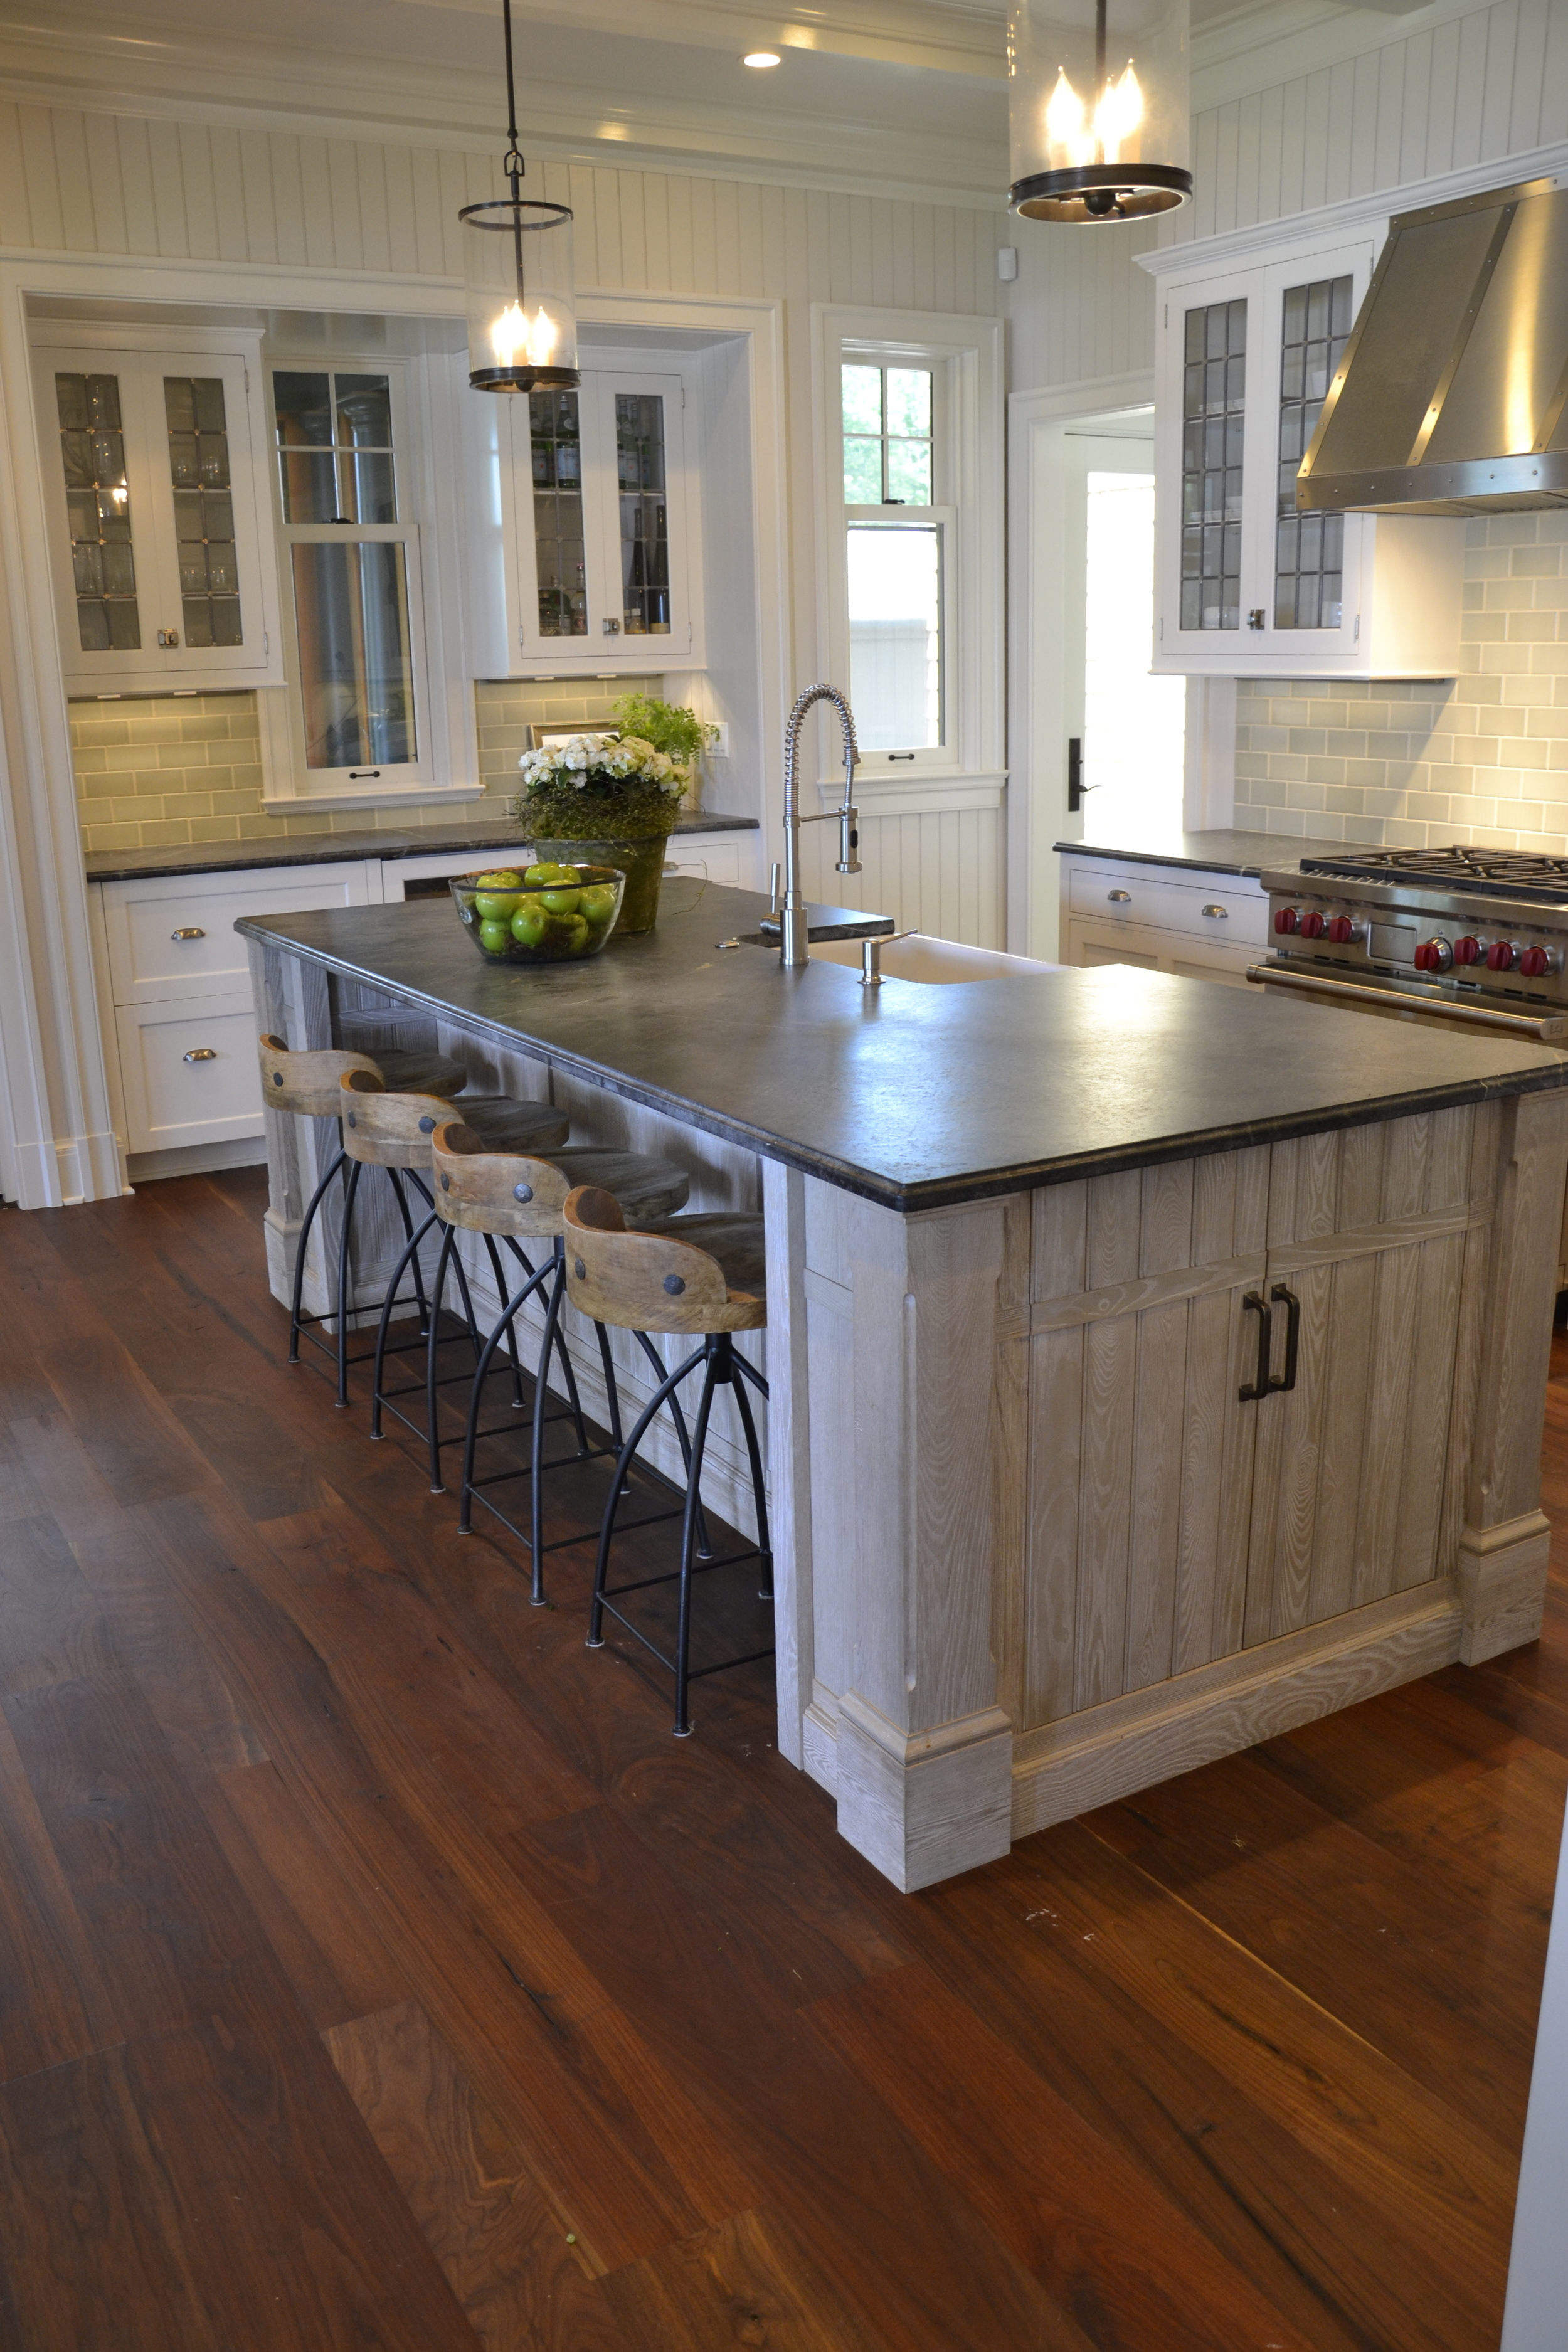 Kitchen island is reclaimed Ash with multi-step painted finish